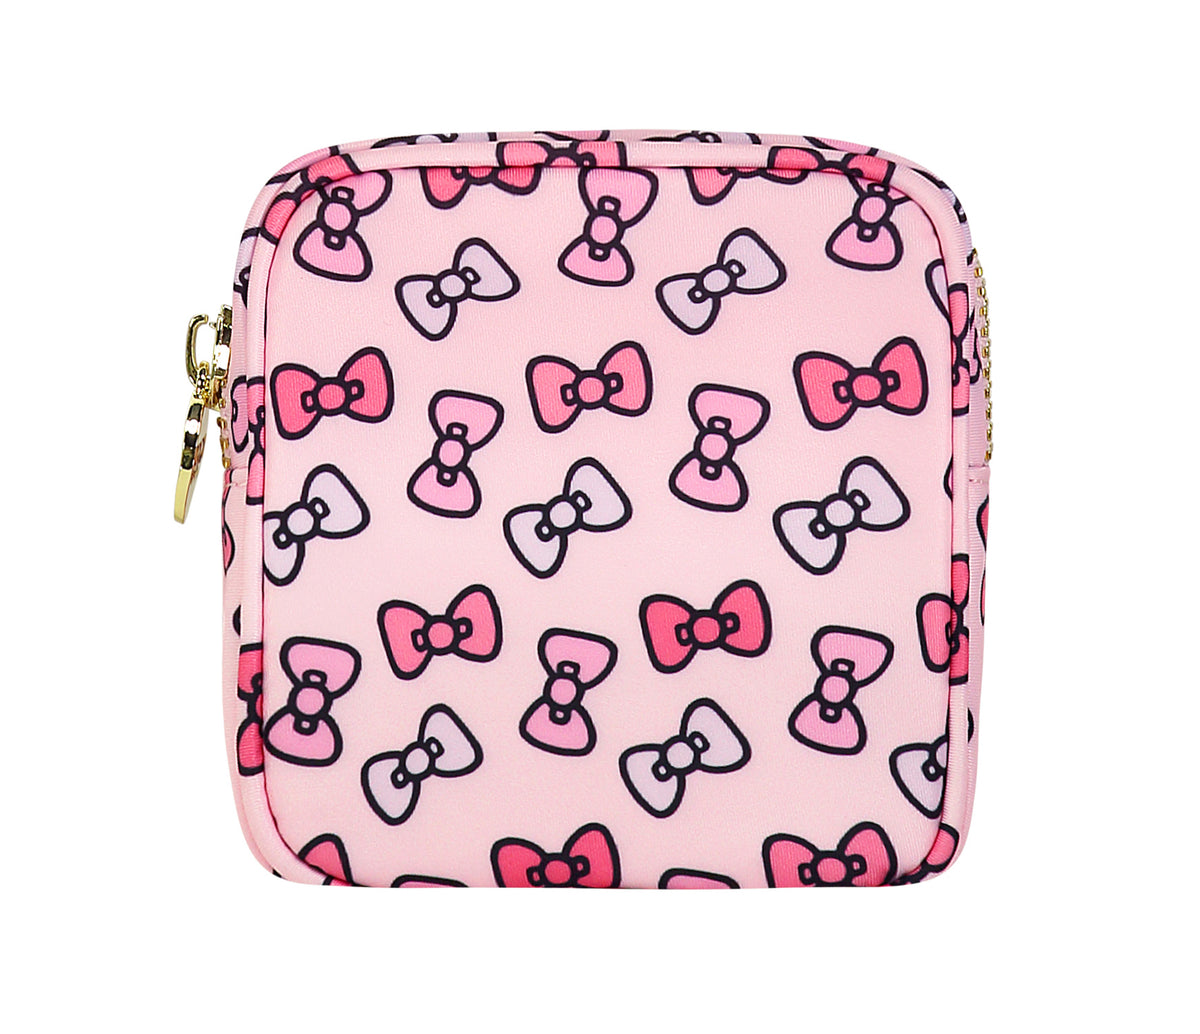 Stoney Clover Lane x Hello Kitty Bows Mini Pouch